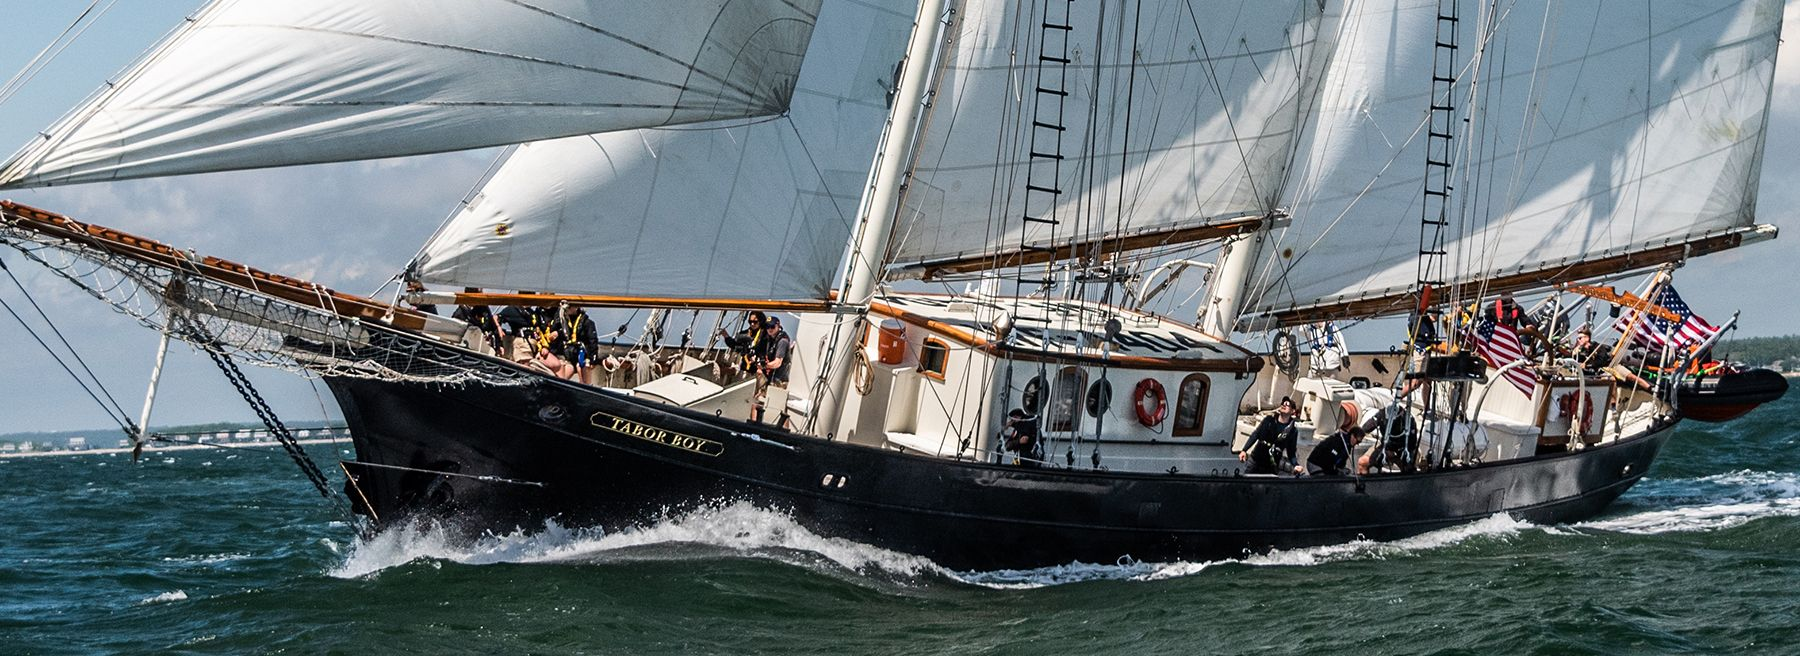 SSV Tabor Boy sails in Buzzards Bay